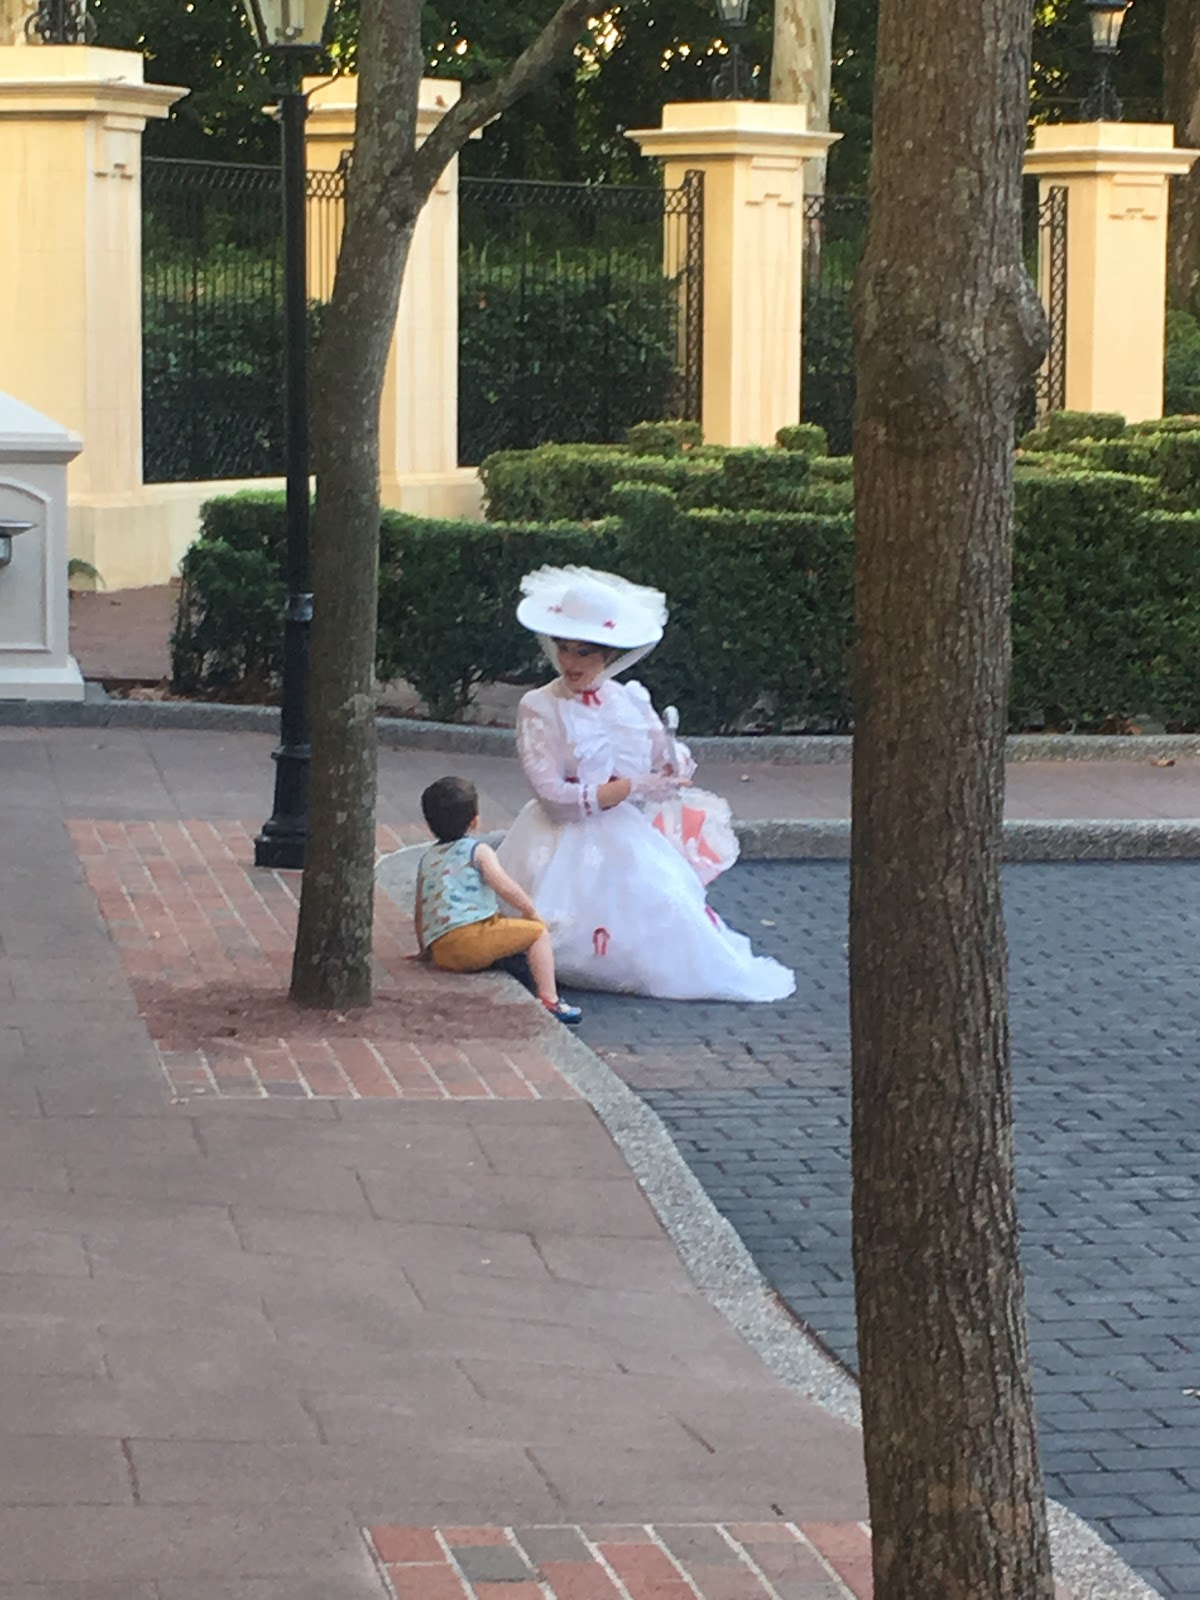 New Disney World Attraction - Mary Poppins